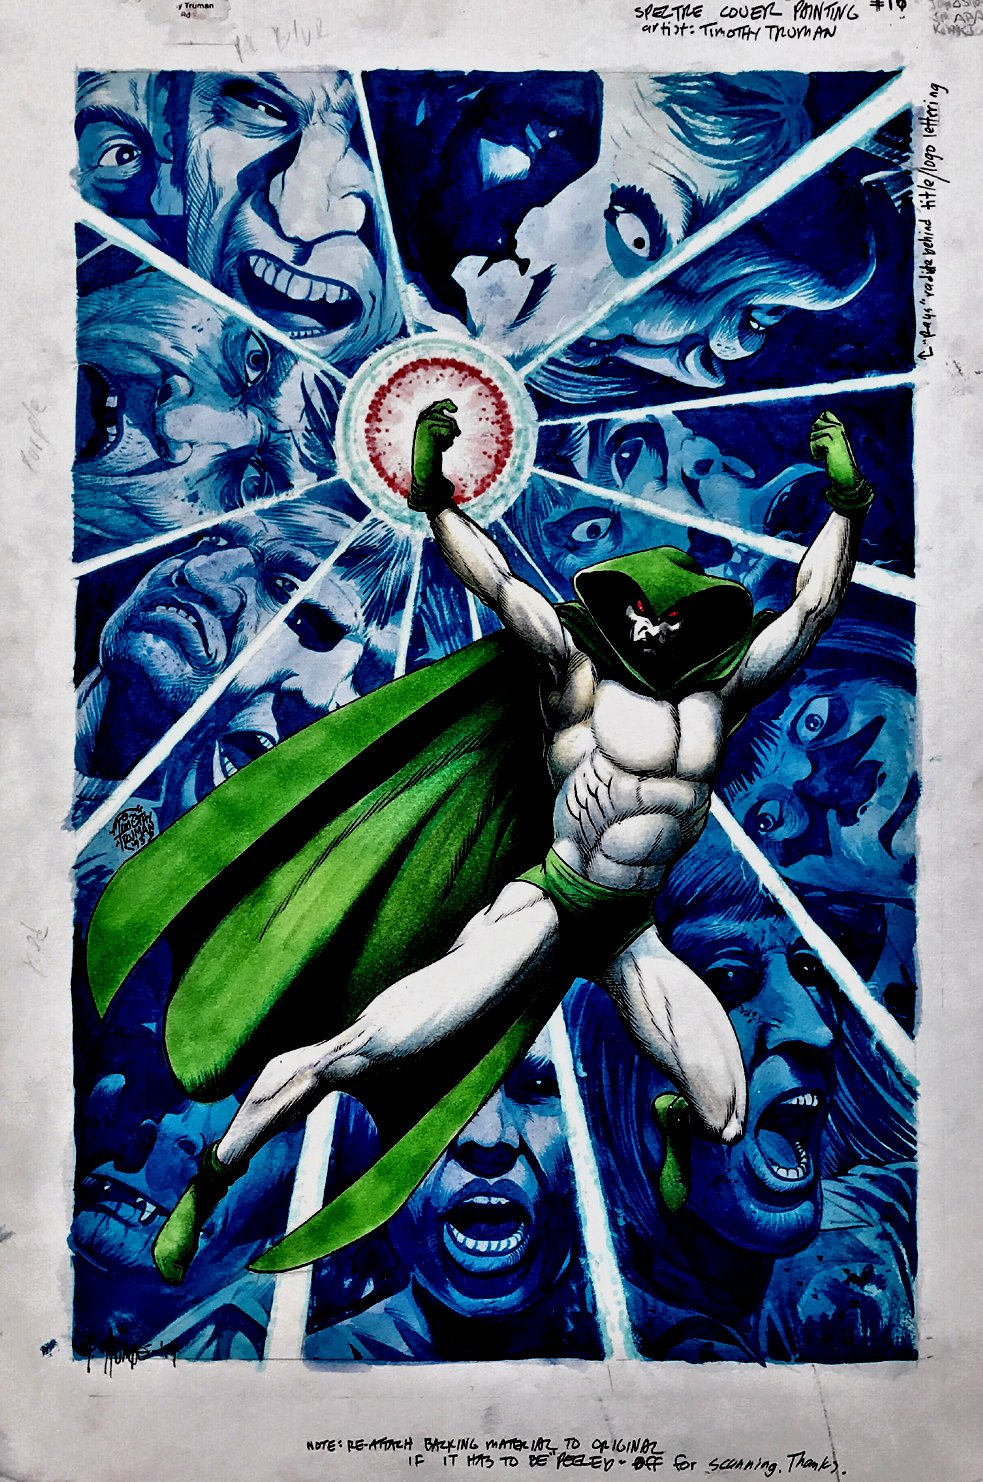 The Spectre #15 Cover Painting (Very Large) 1993